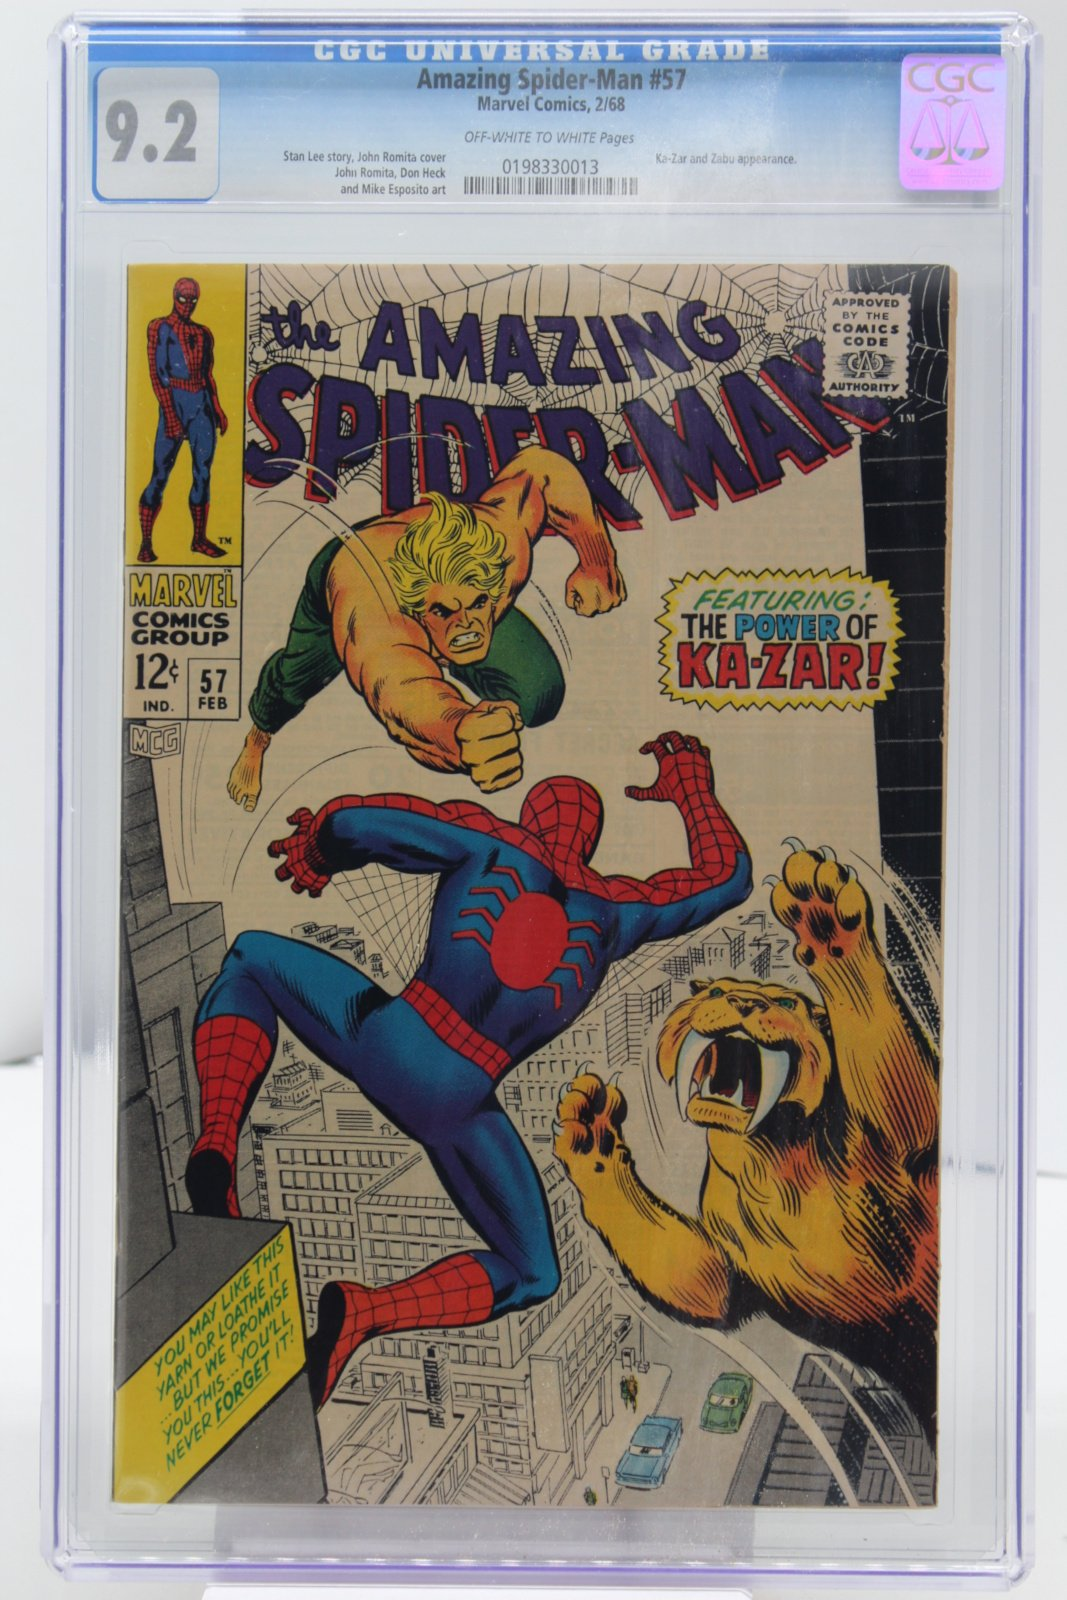 Amazing Spider-Man #57 - International Comic Exchange